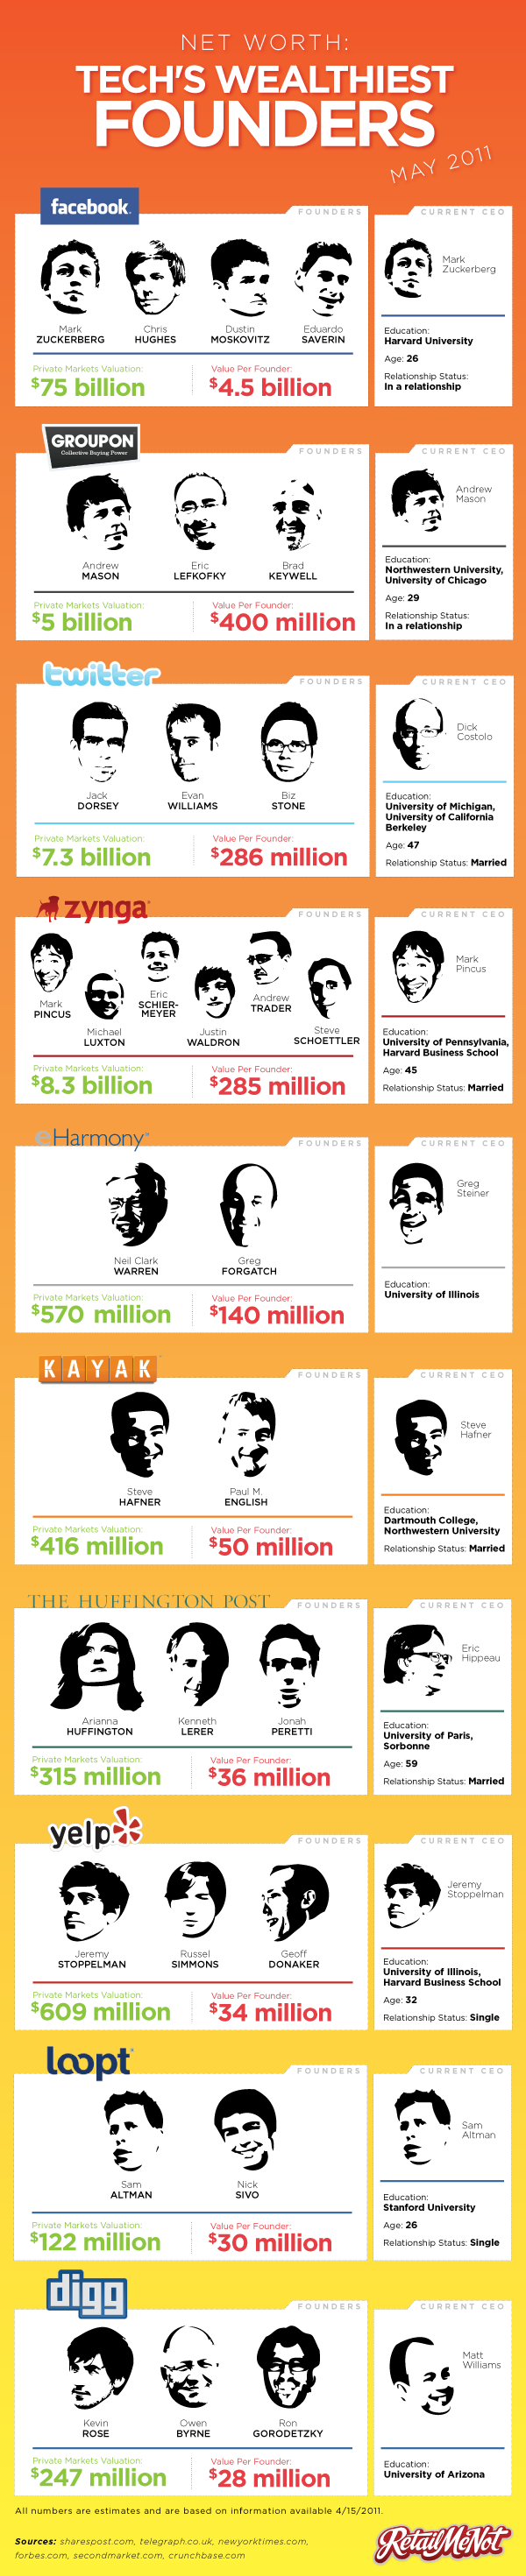 World's leading tech founders and their net worth